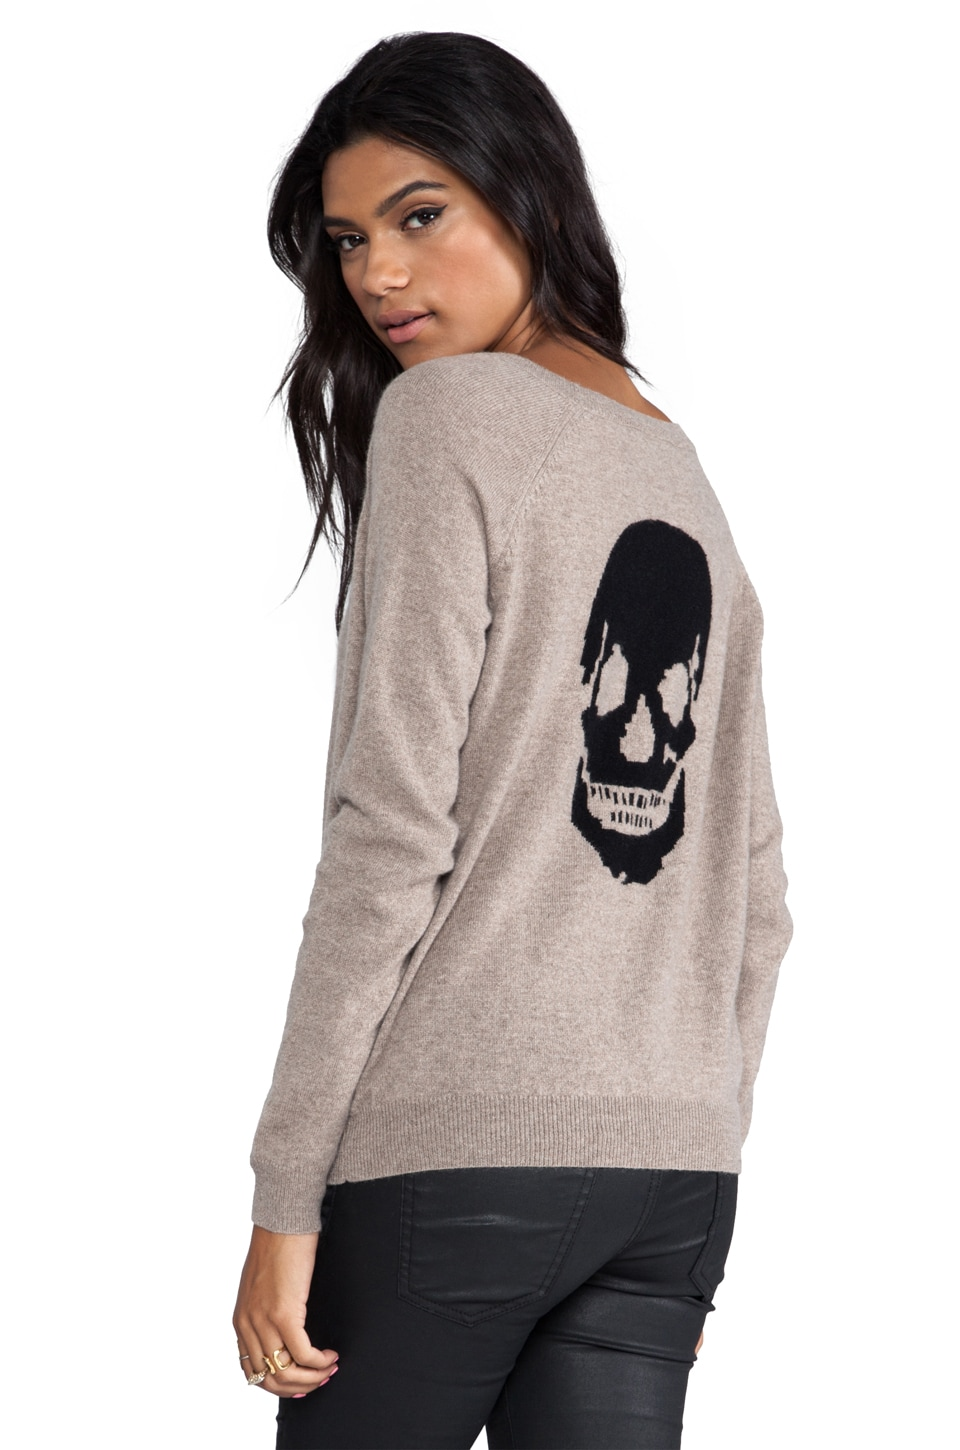 360 Sweater Luther Skull Cashmere Pullover in Heather Camel/Black